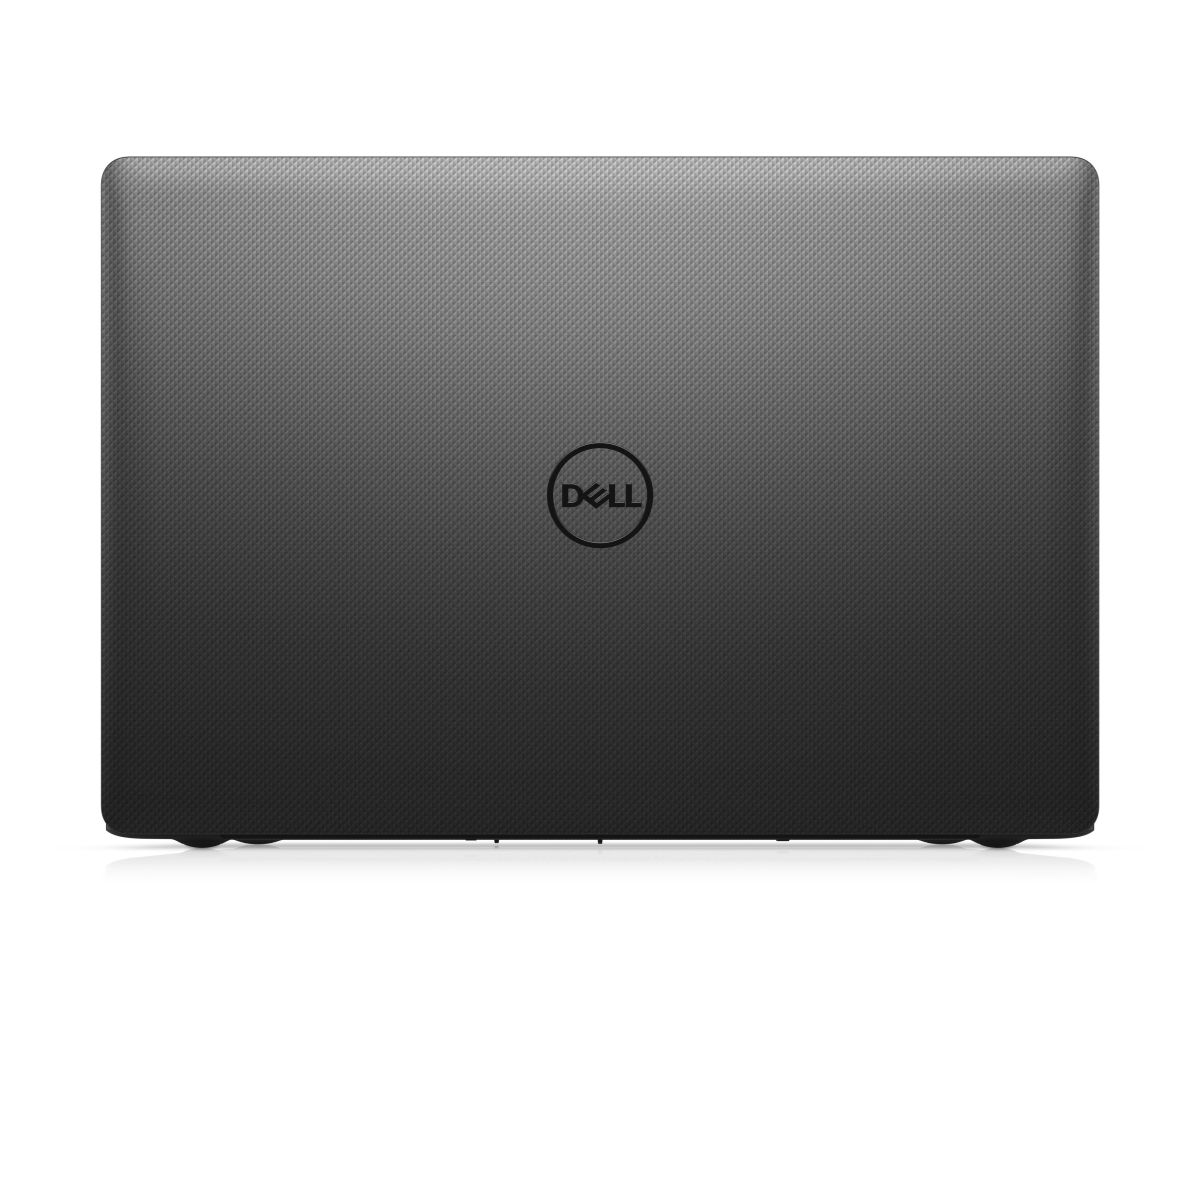 "Notebook Dell Vostro 3583 Core I5 8265u Memoria 4gb Ddr4 Hd 1tb Tela 15,6"" Fhd Sistema Windows 10 Pro"